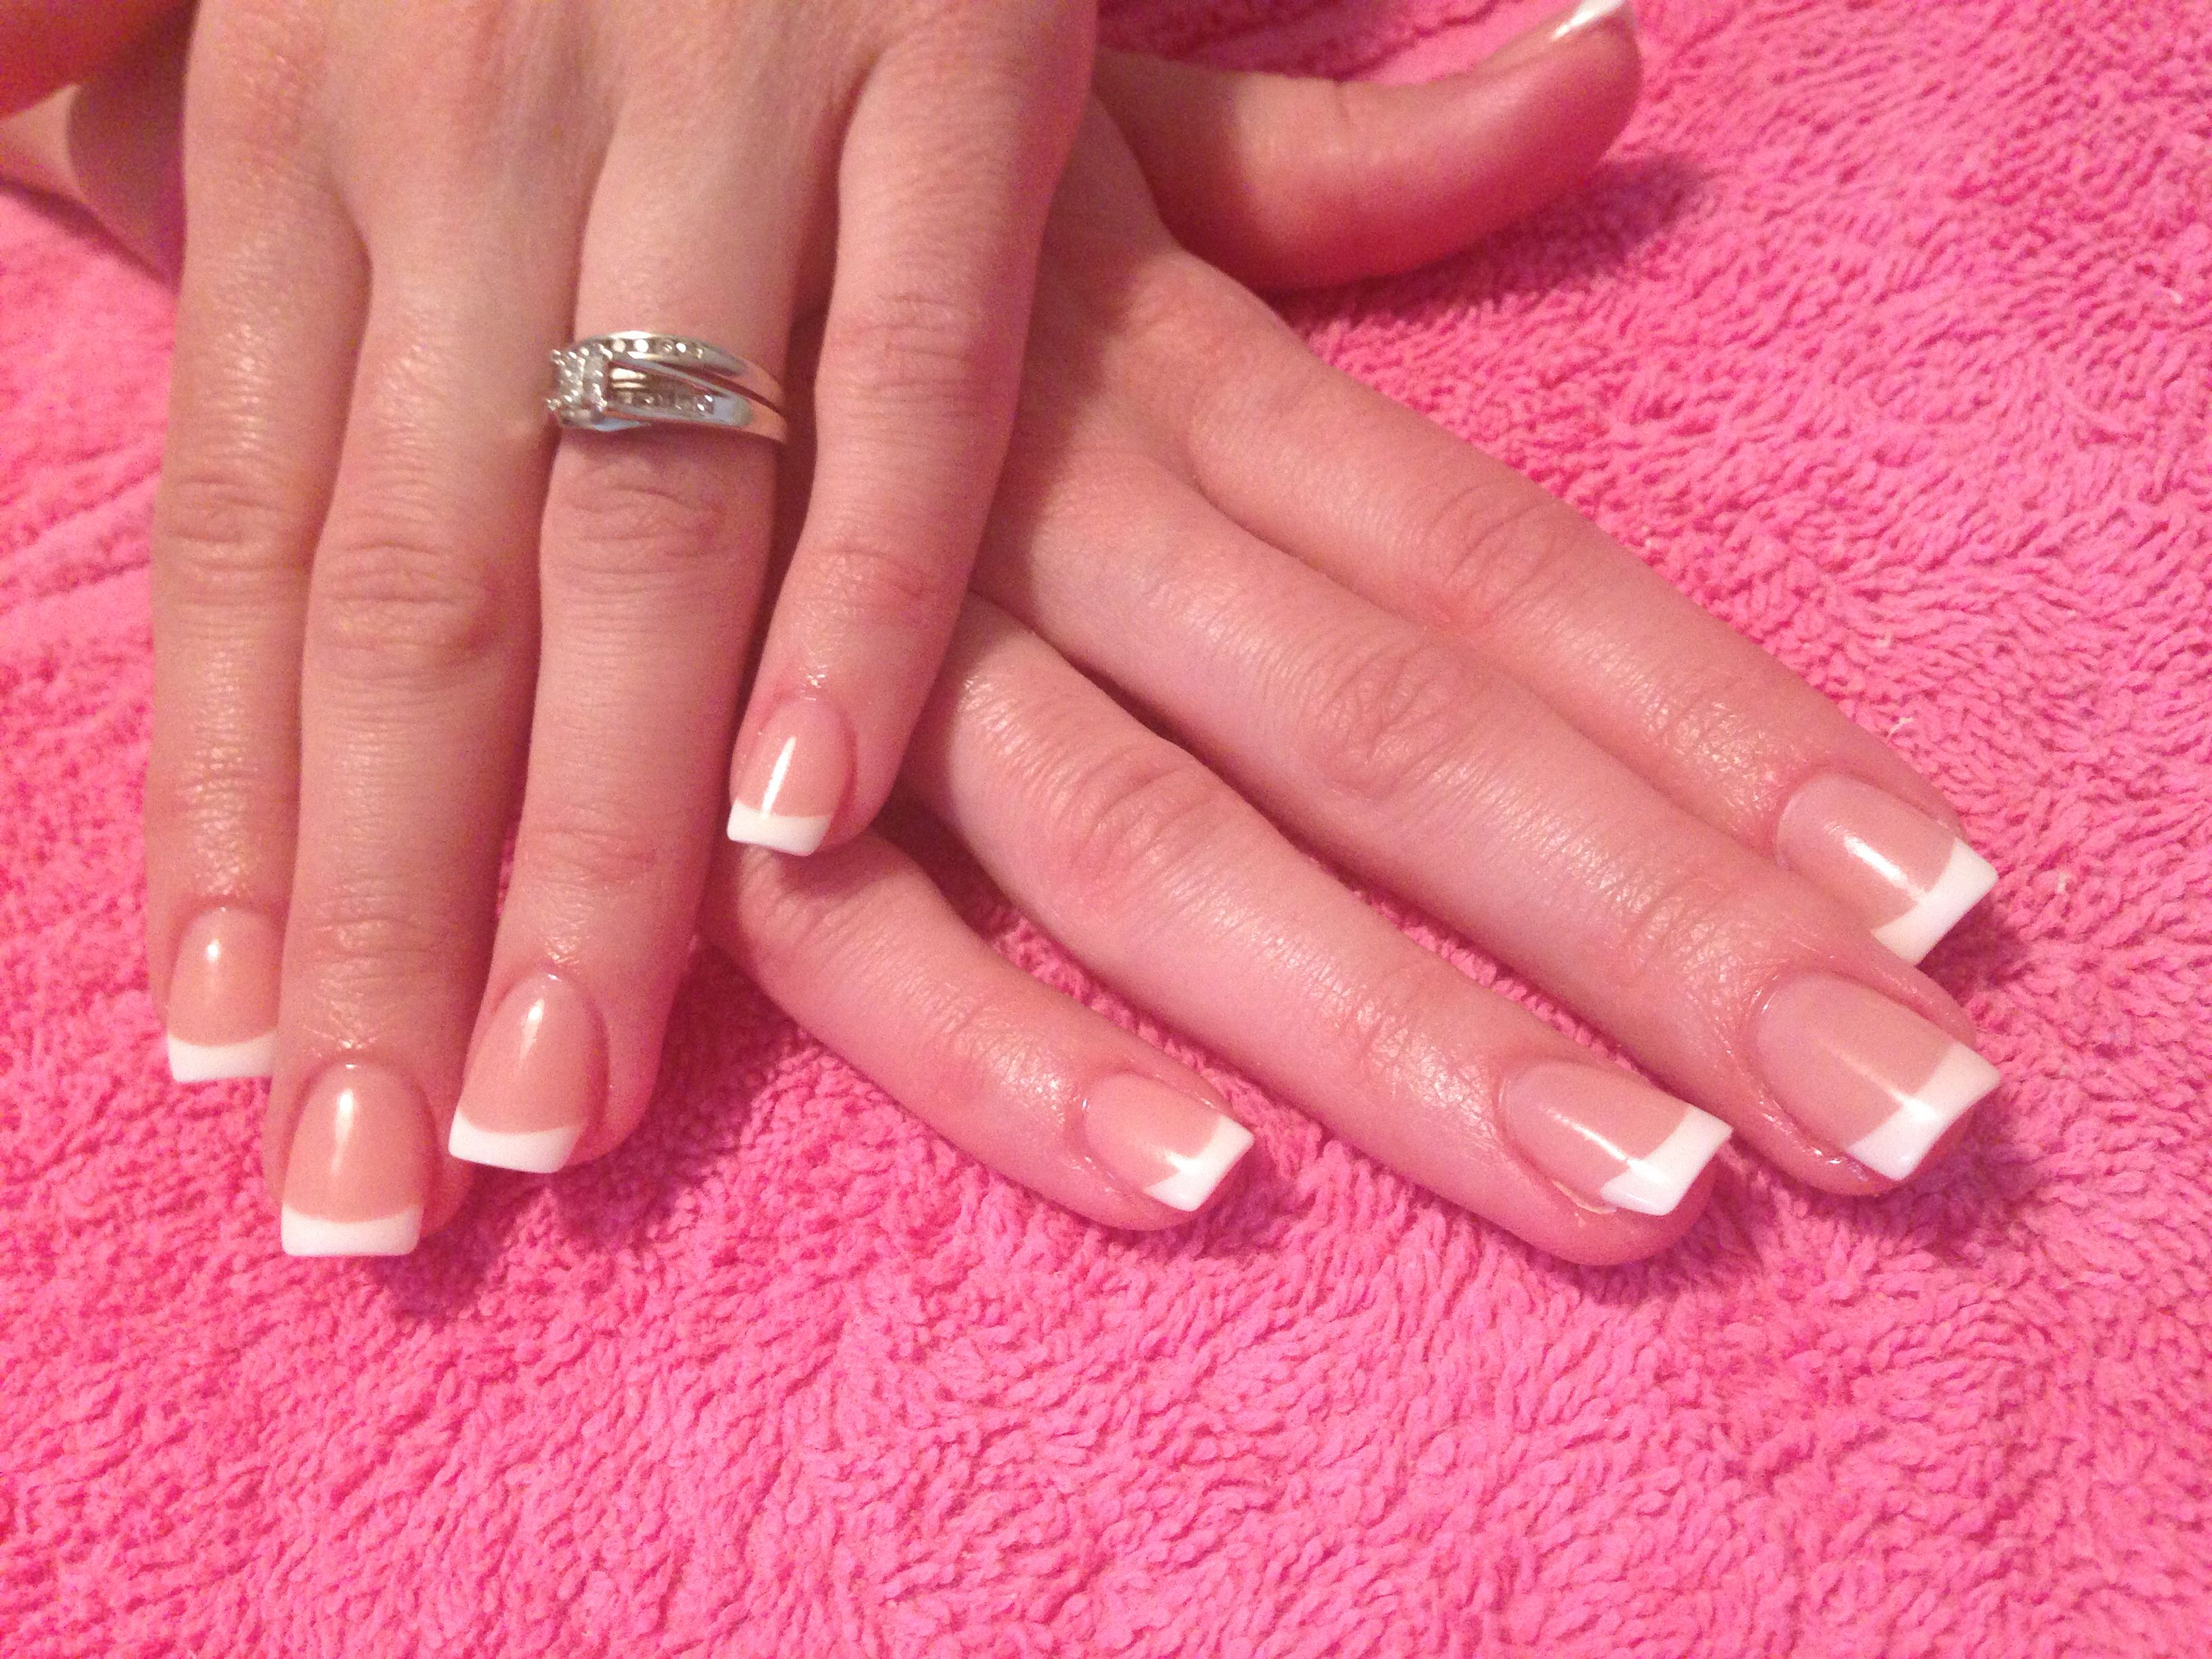 Classic French Acrylic Nails Like This But Slightly